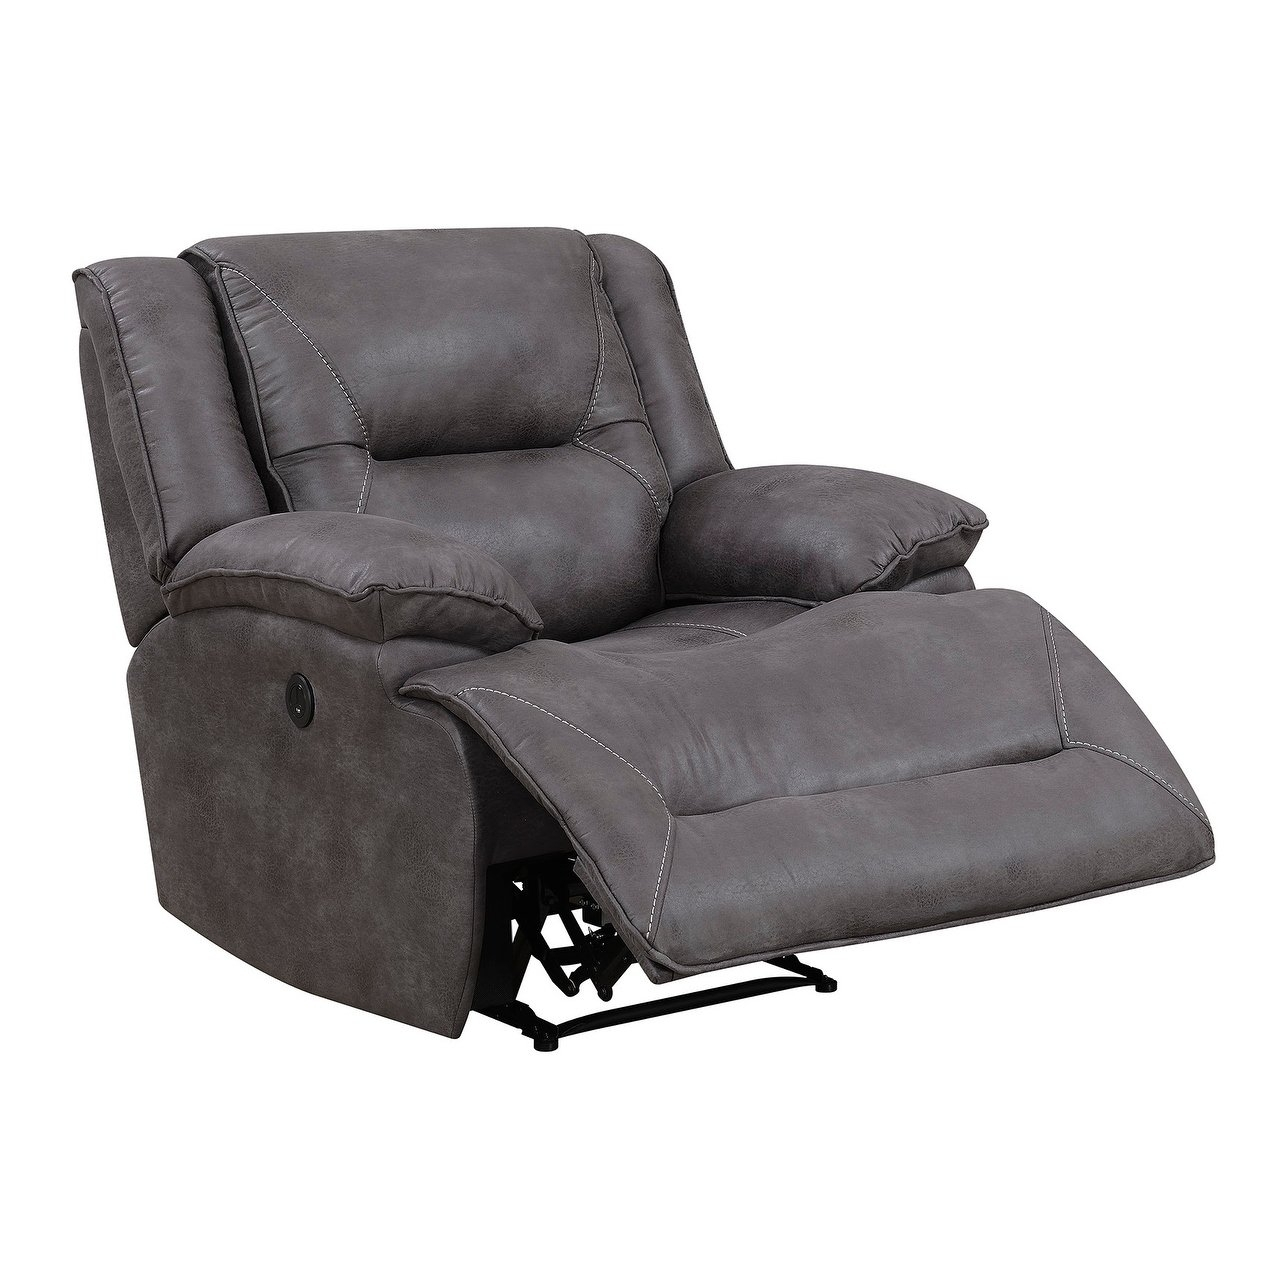 Shop Dylan Power Recliner With Memory Foam Seat Topper And Usb throughout Travis Dk Grey Leather 6 Piece Power Reclining Sectionals With Power Headrest & Usb (Image 23 of 30)